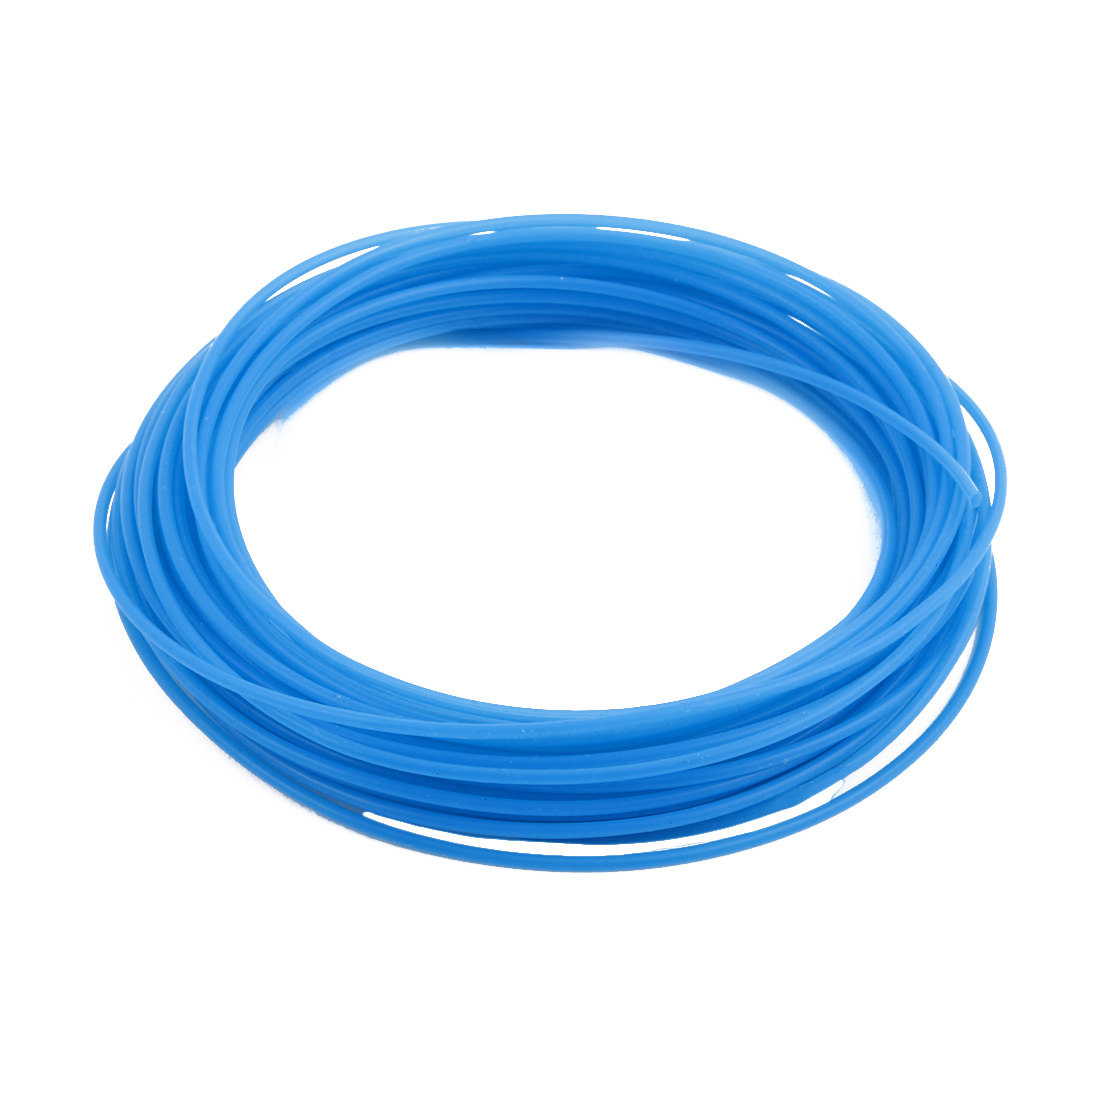 1.5mmx1.8mm PTFE Resistant High Temperature Blue Tubing 10 Meters 32.8Ft